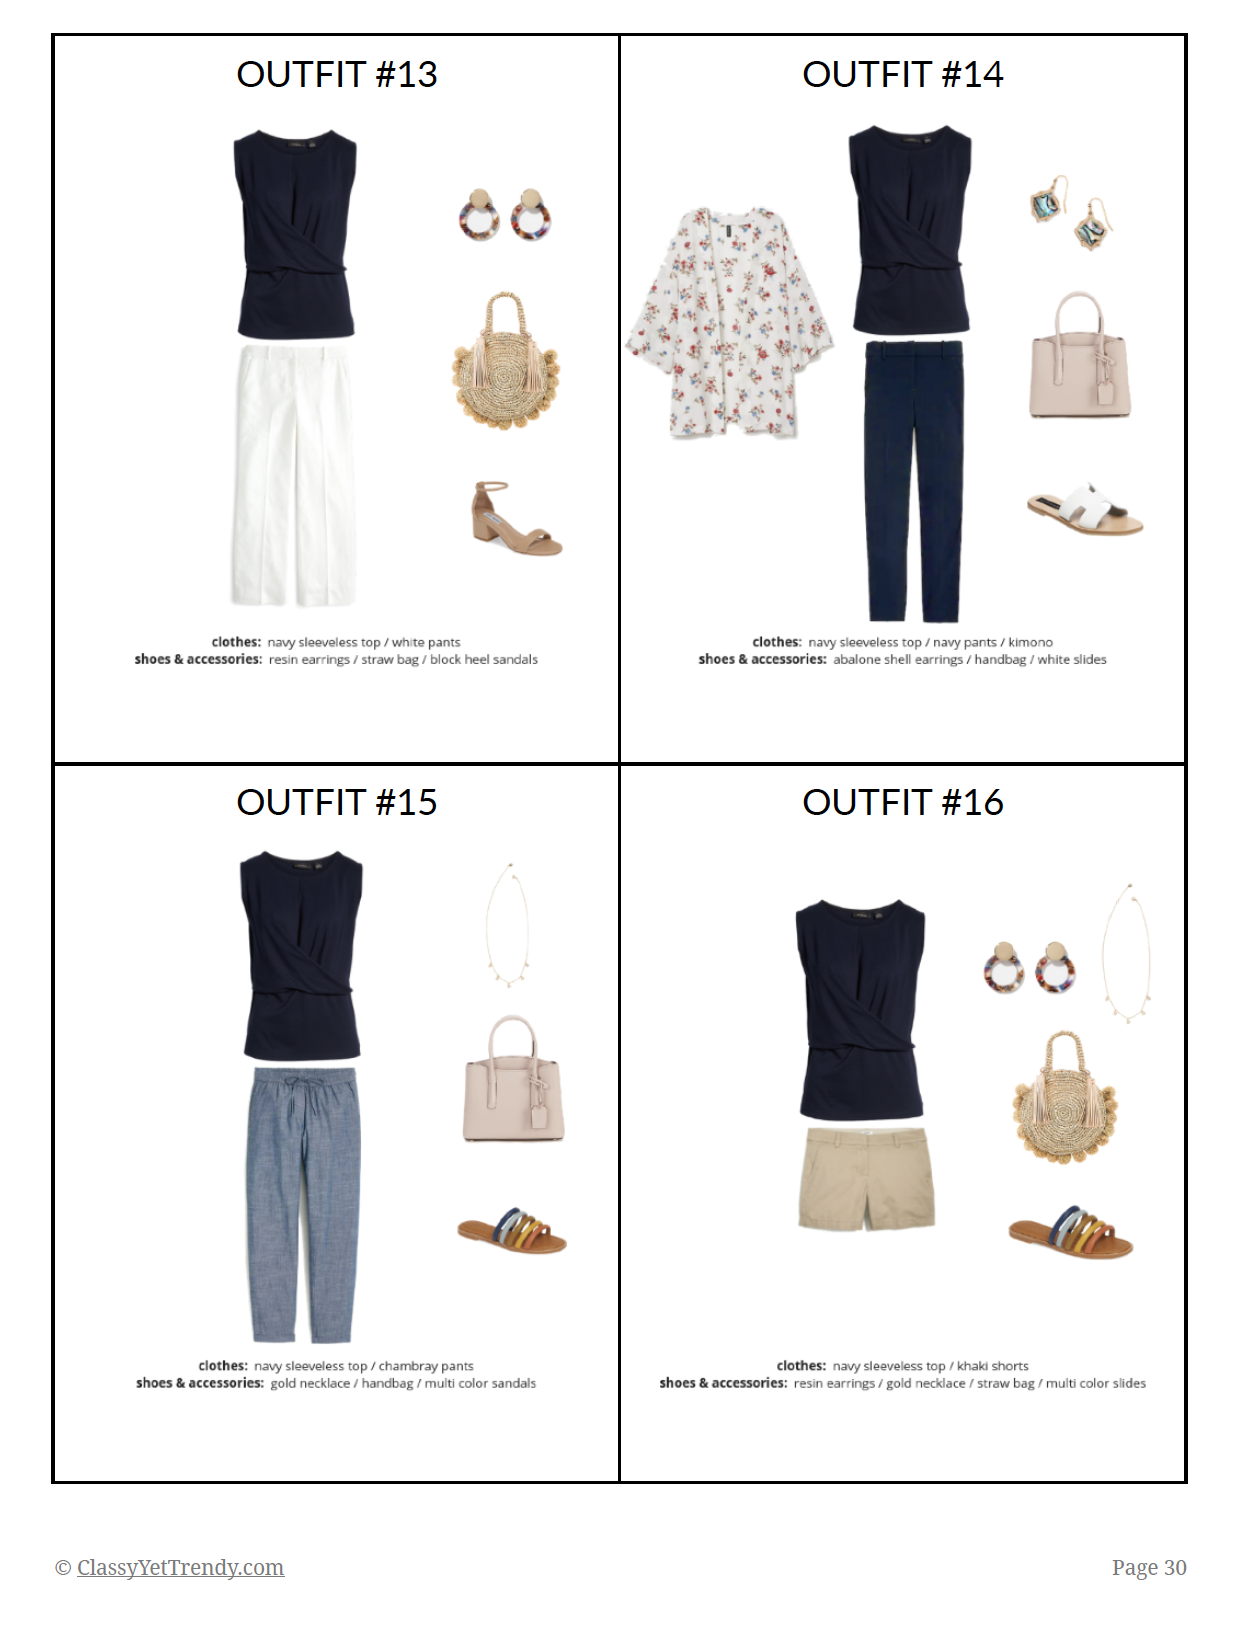 The Essential Capsule Wardrobe - Summer 2019 - page 30